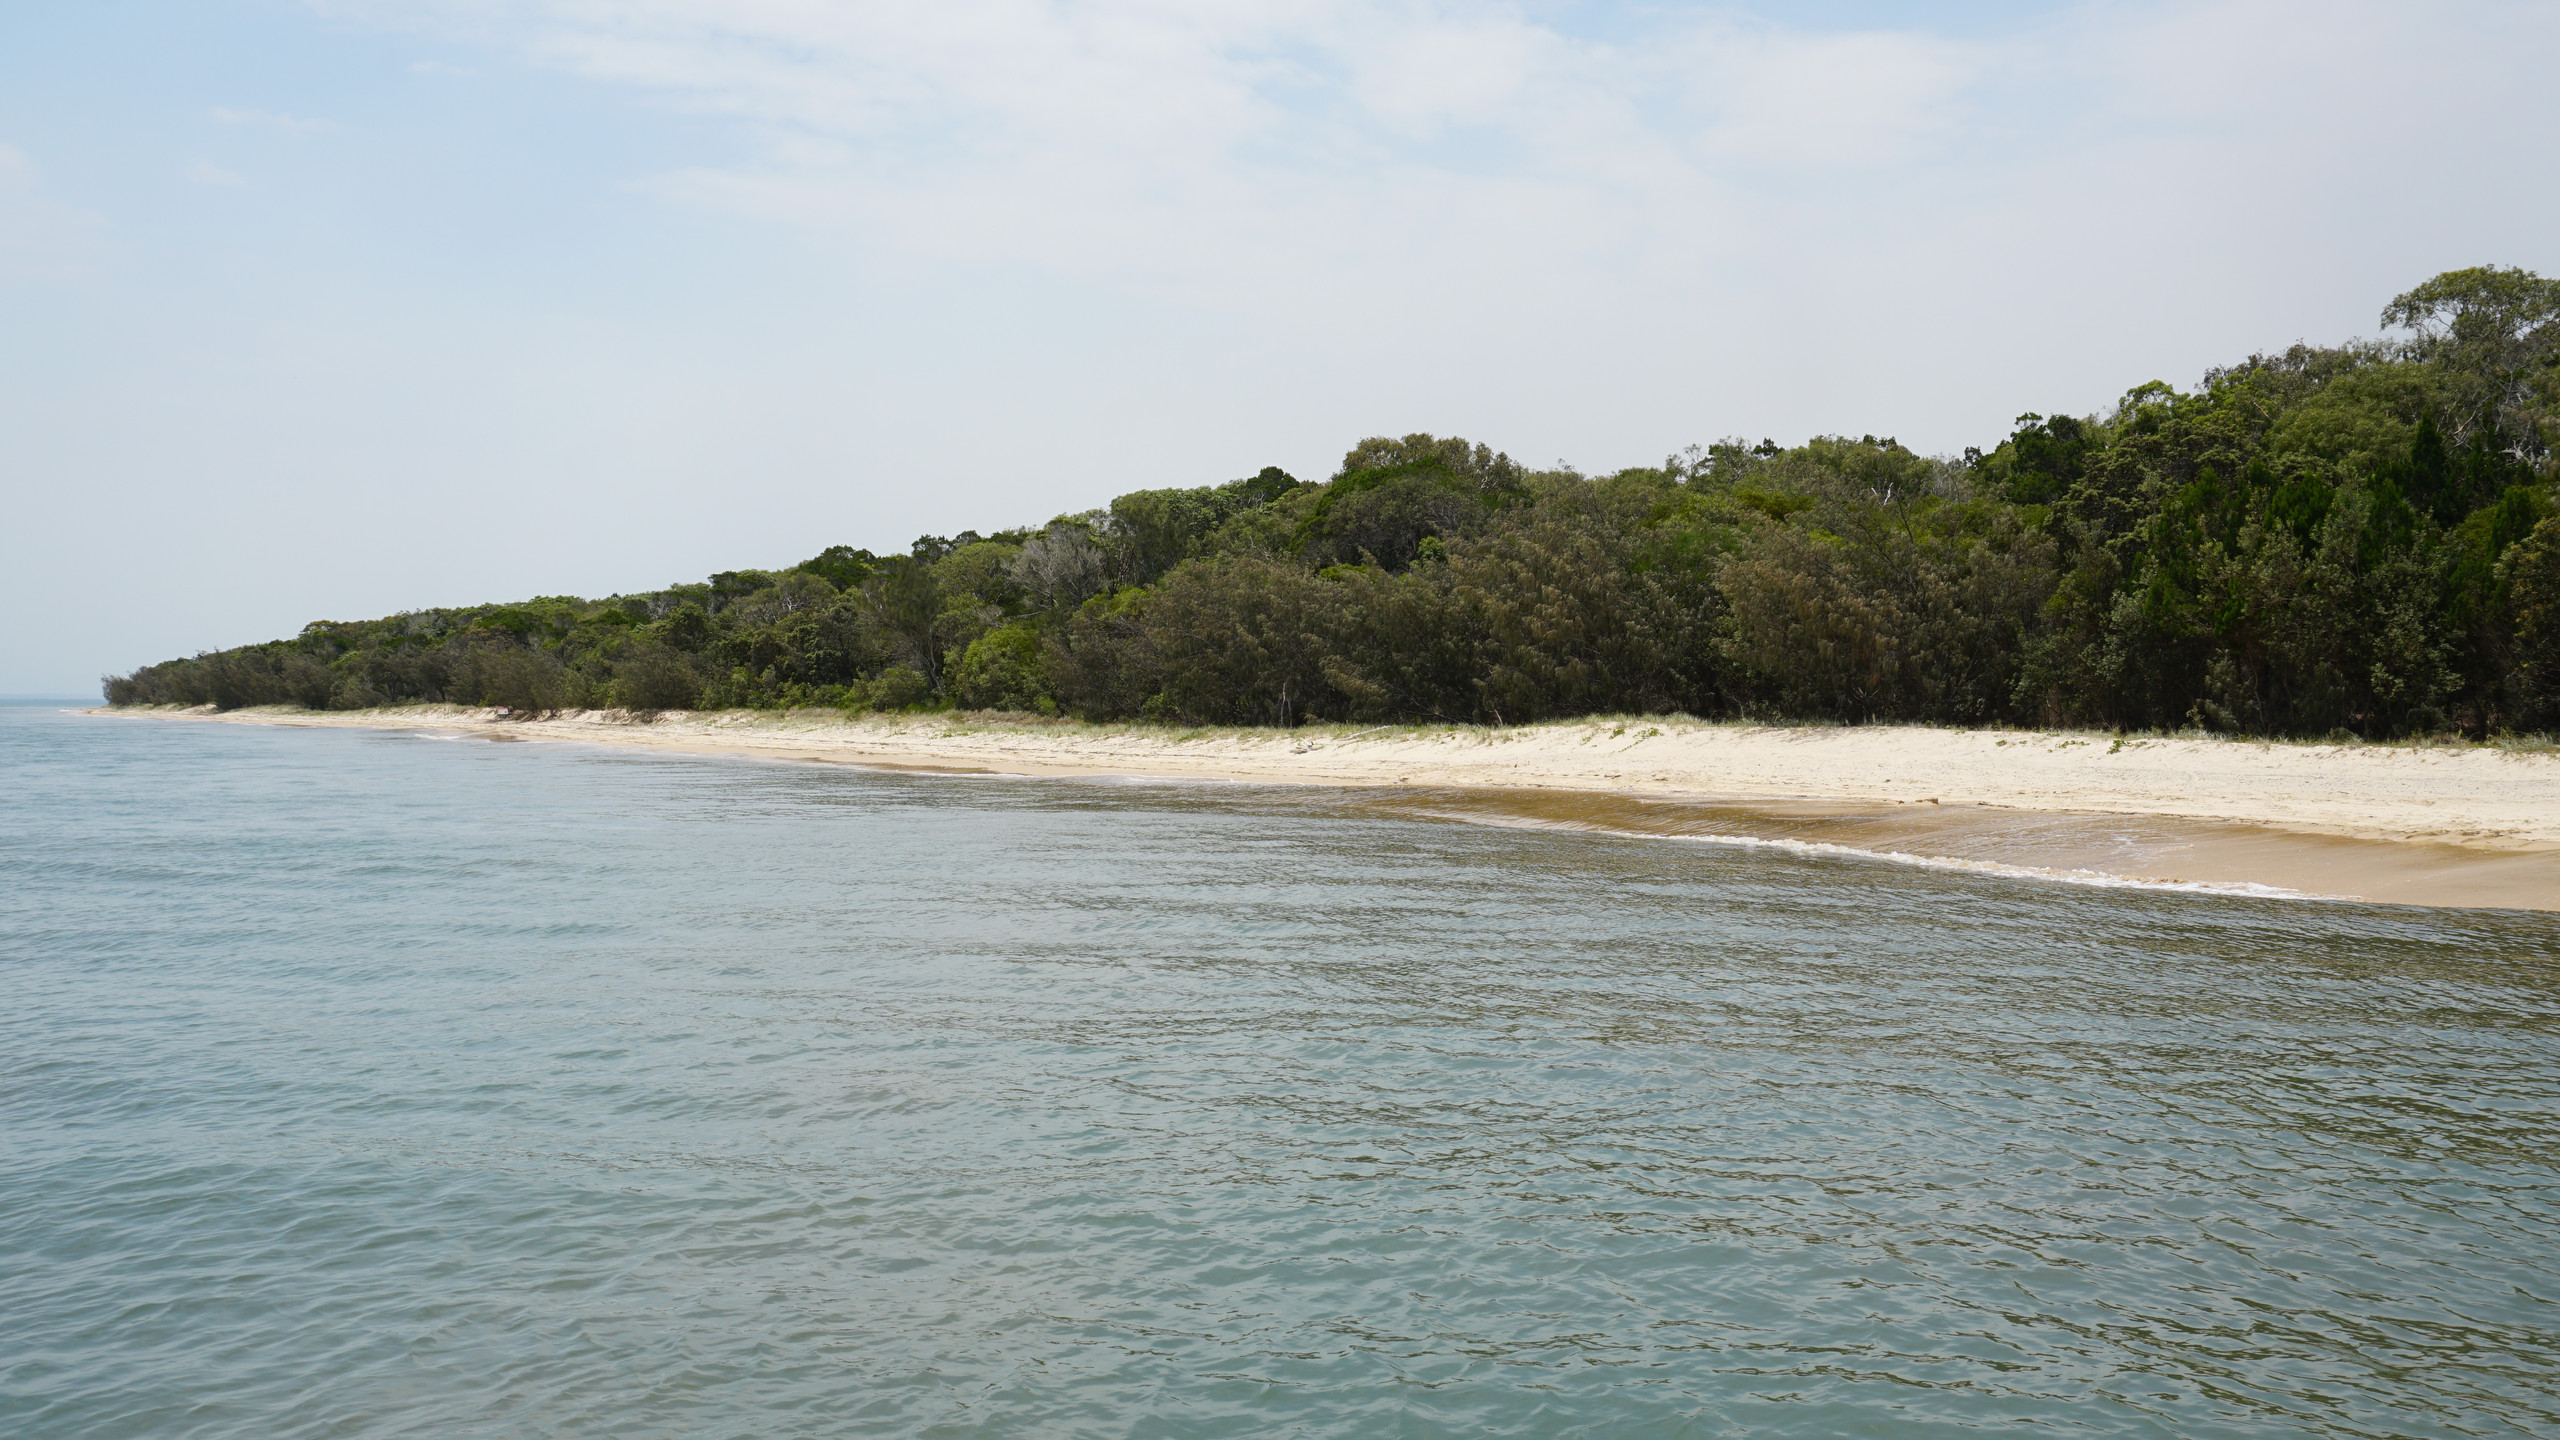 Approaching Fraser Island